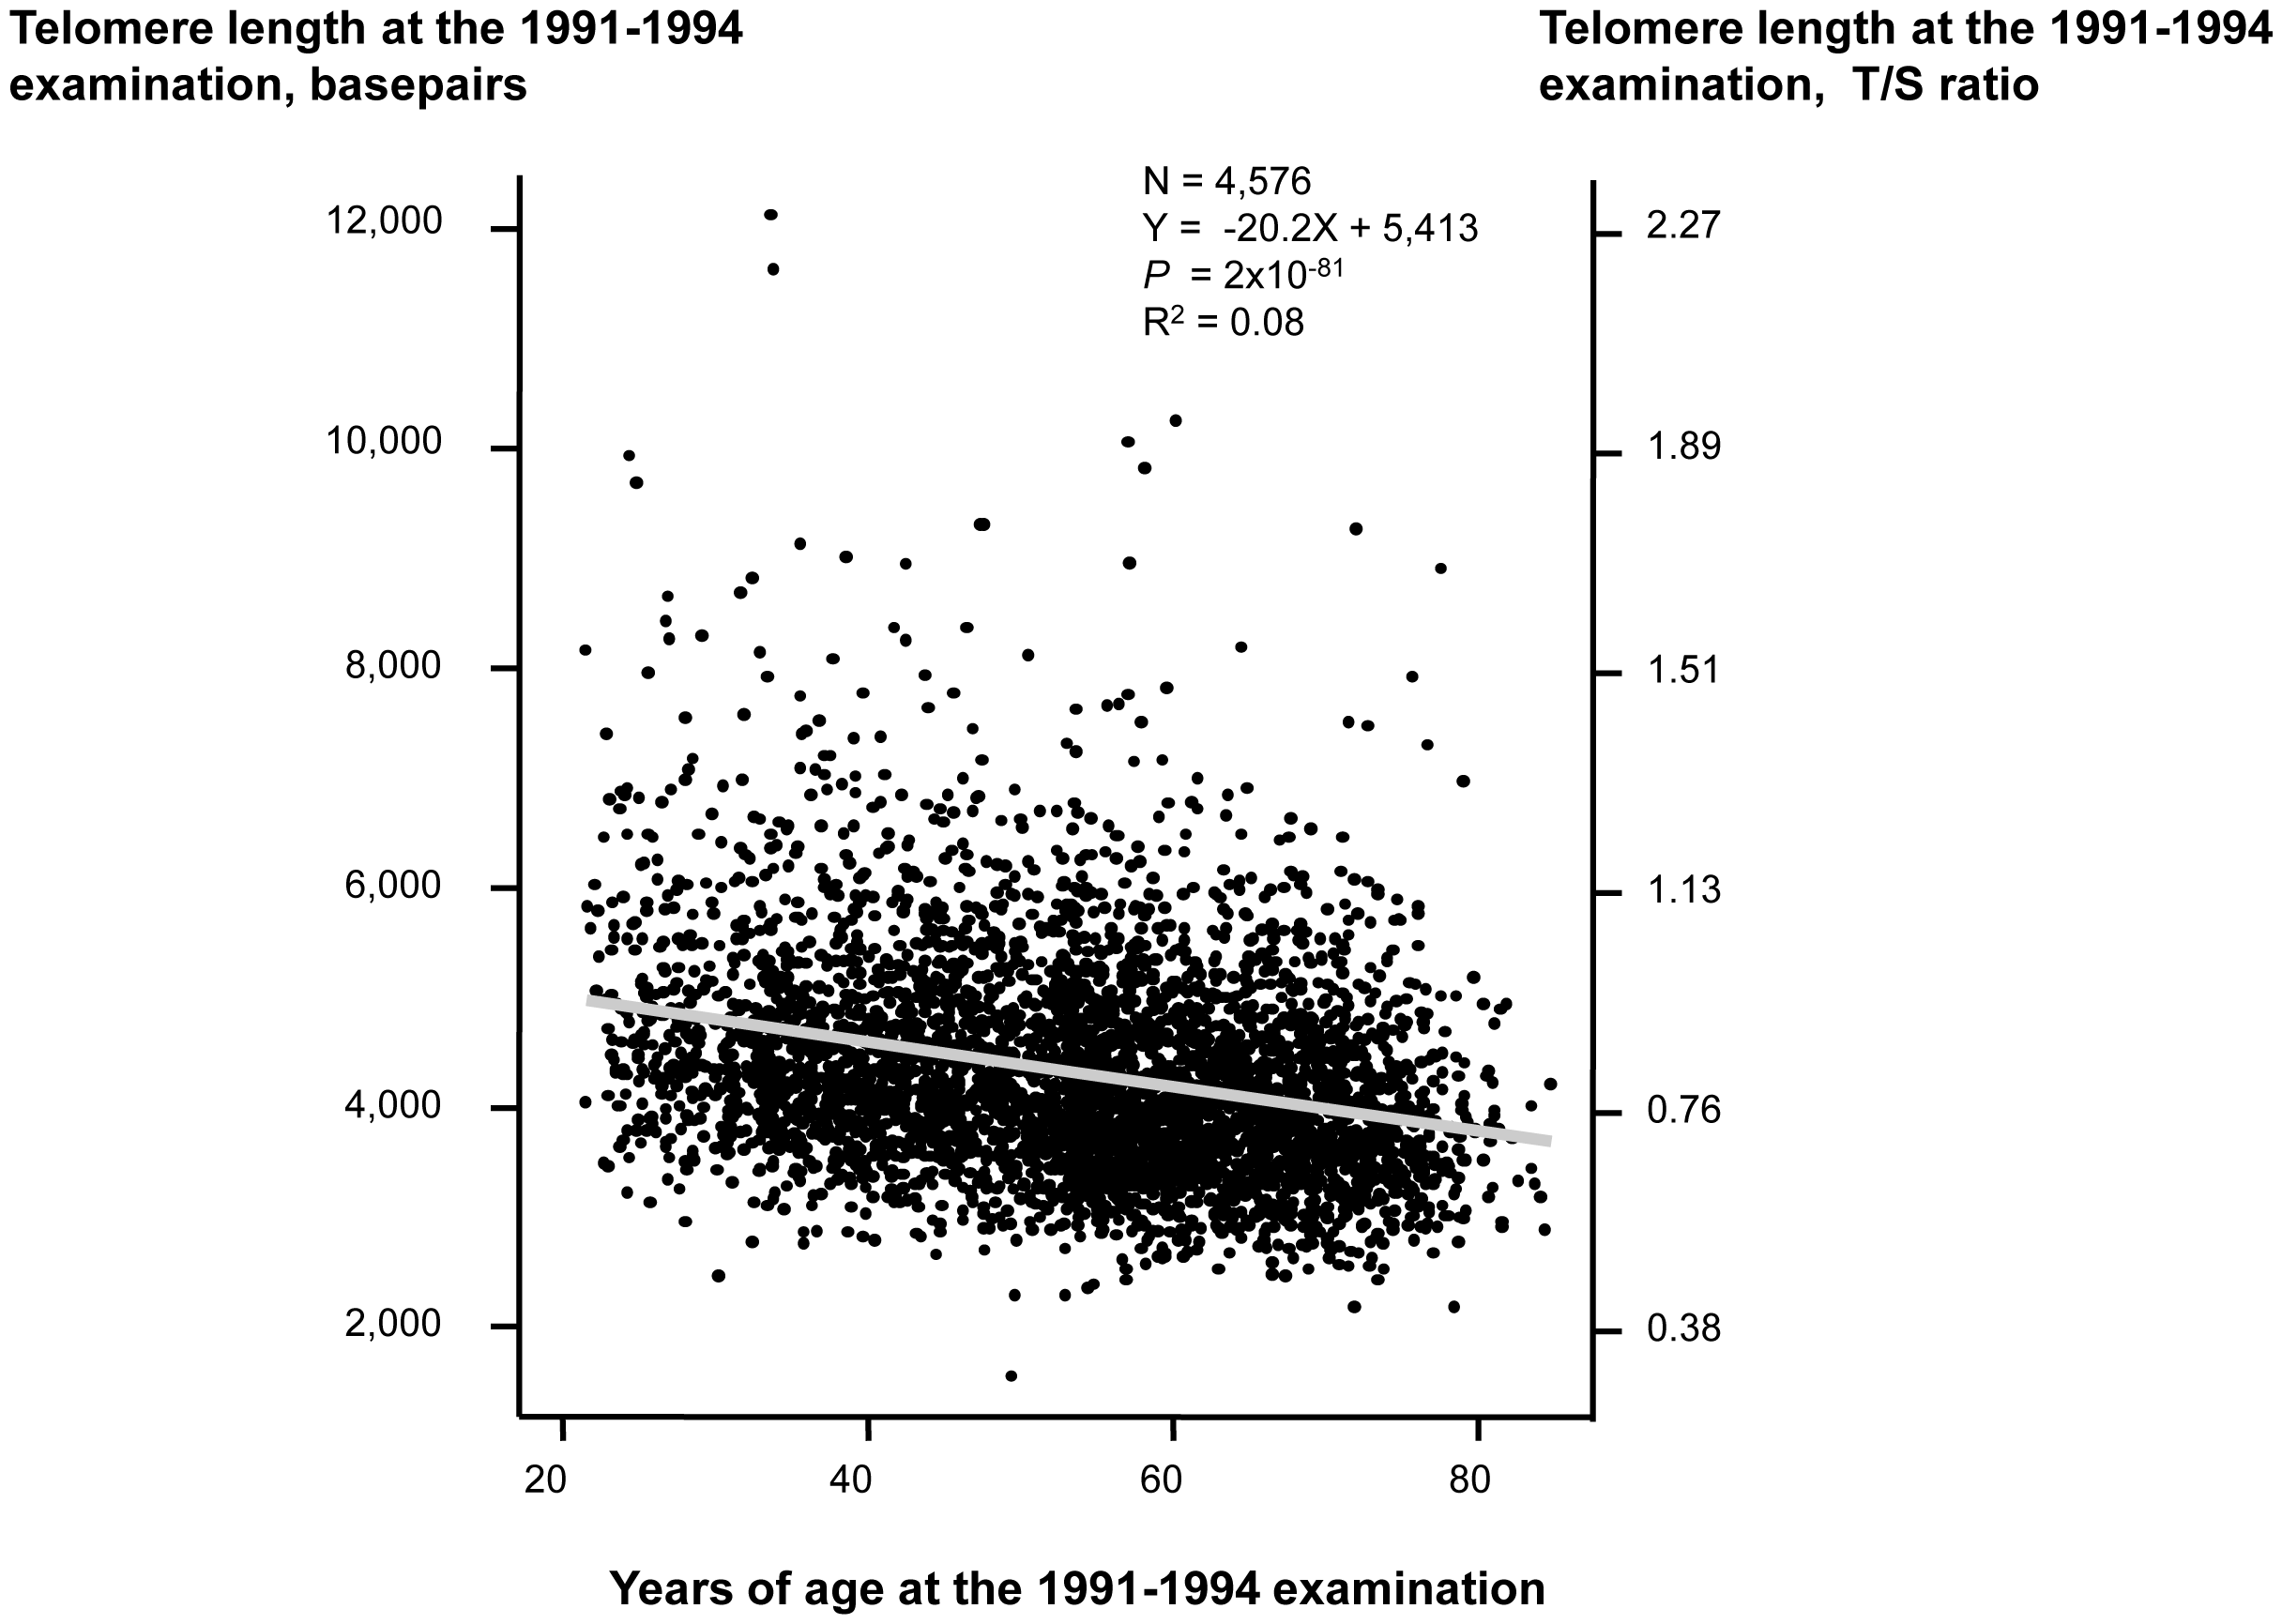 Telomere length in basepairs as a function of age in years at the 1991–1994 examination.